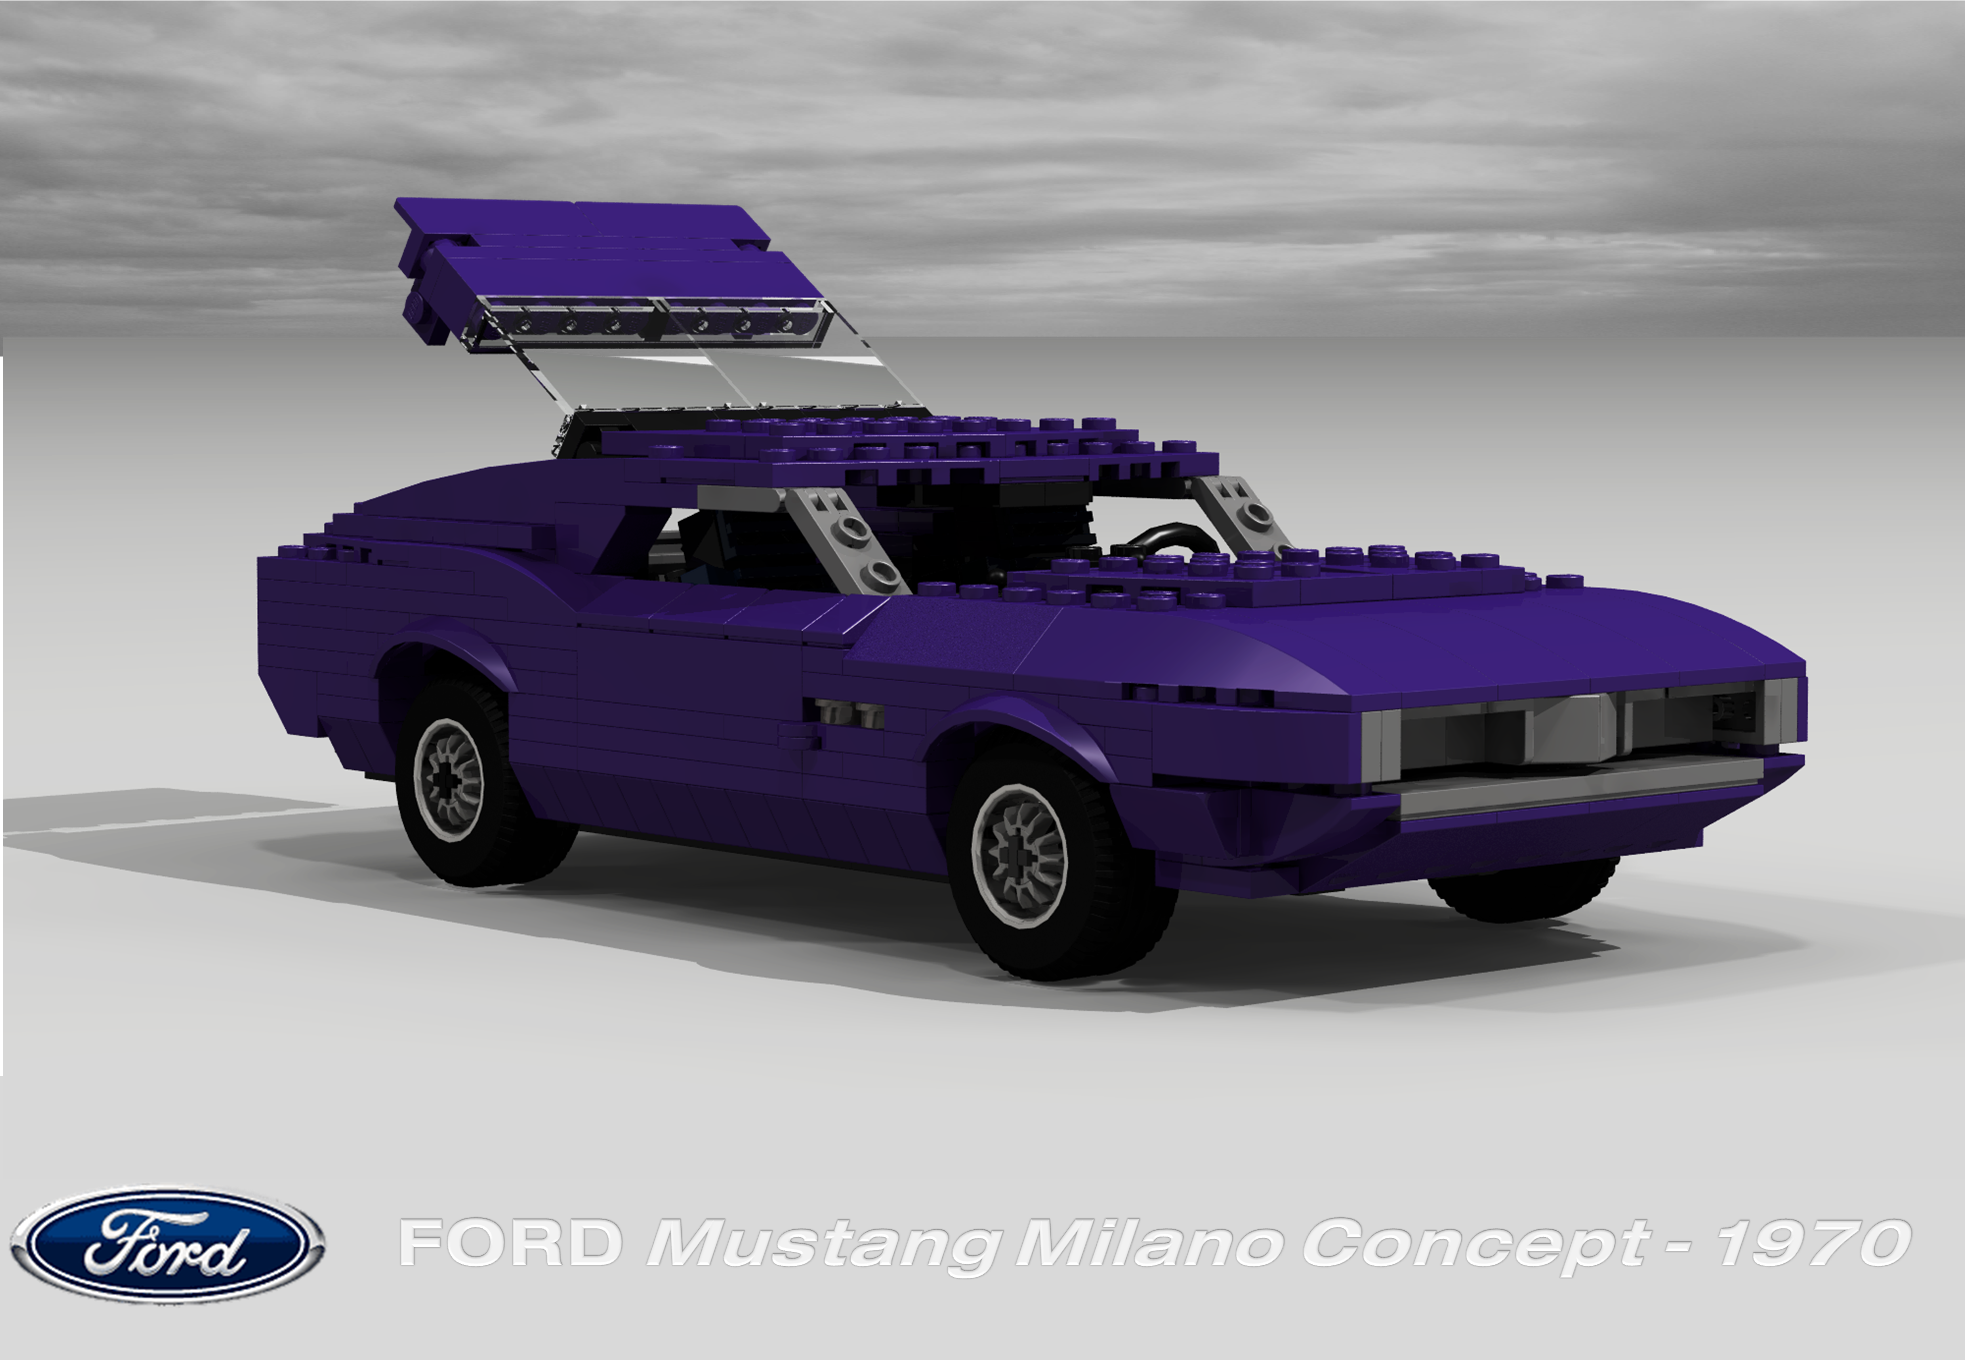 ford_mustang_milano_concept_1970_11.png